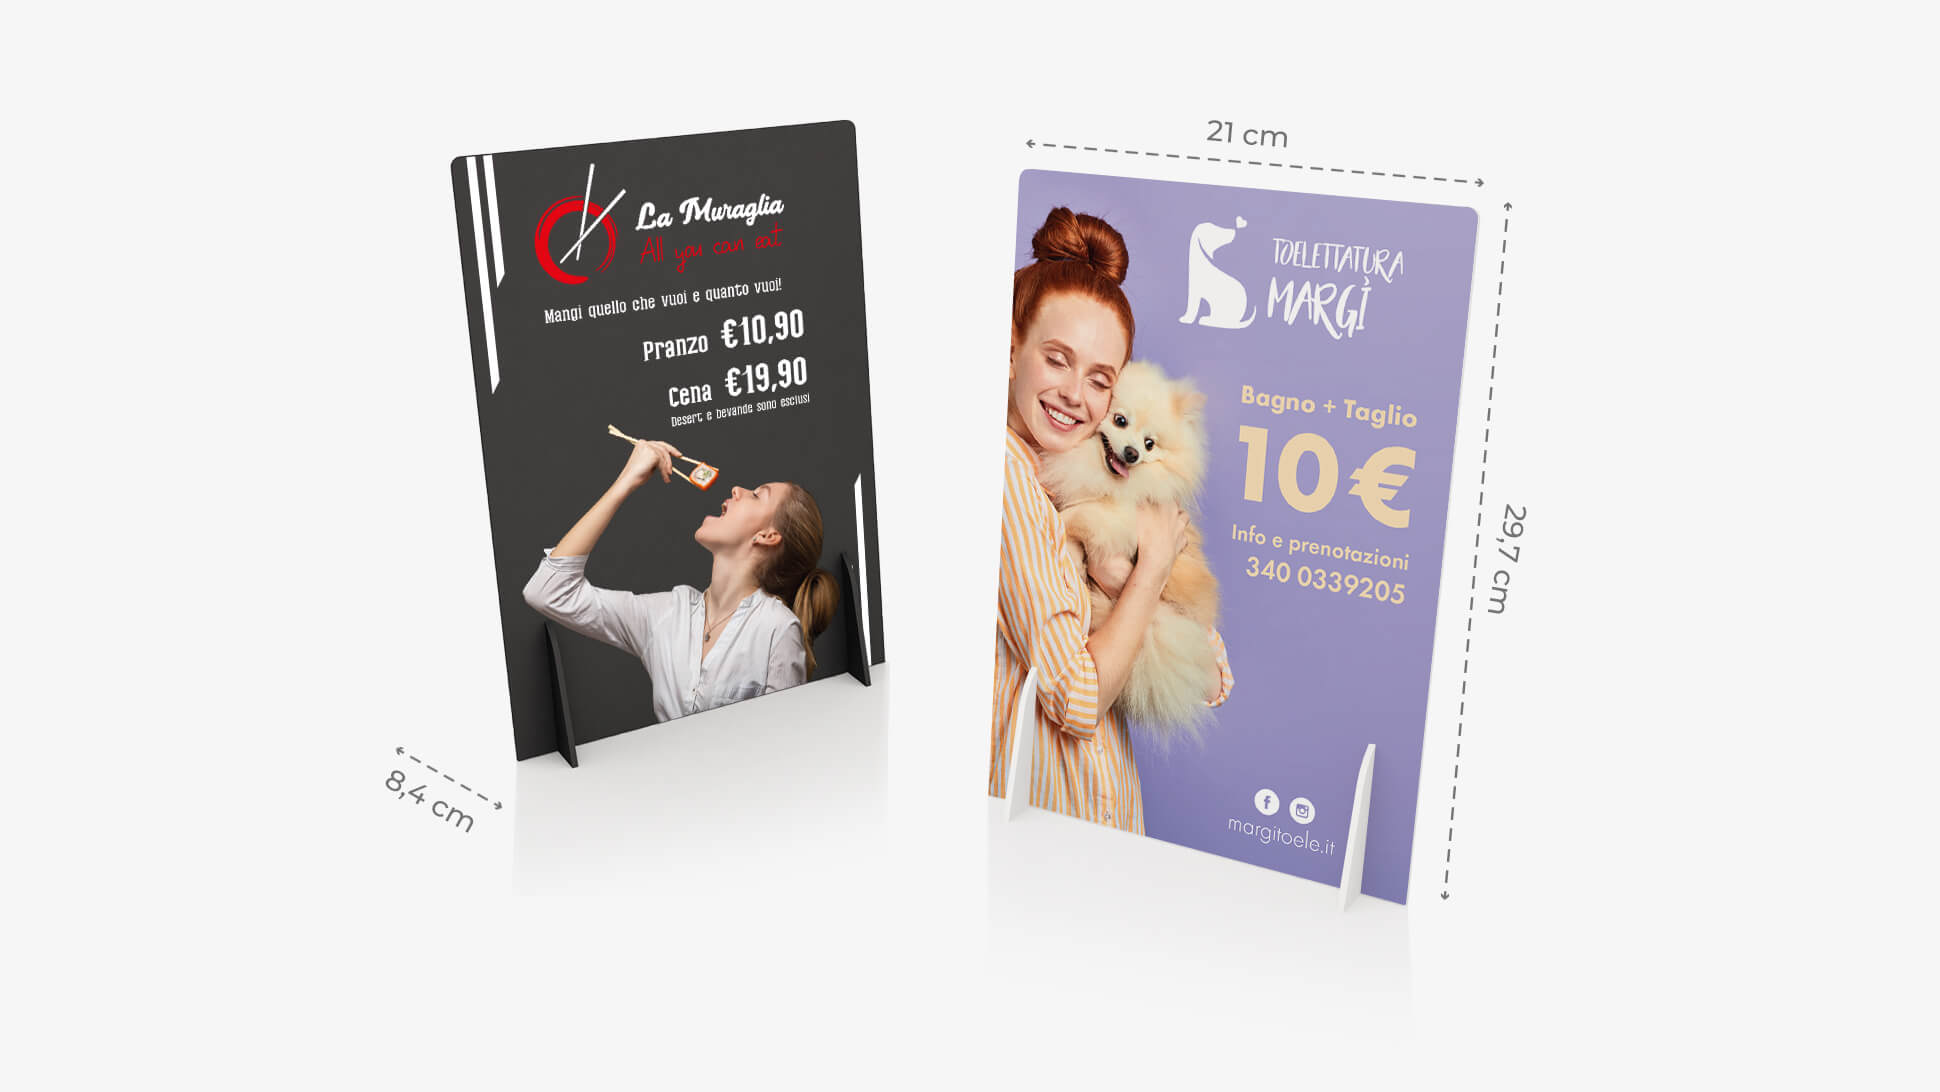 Display pvc A4 personalizzabile | tictac.it